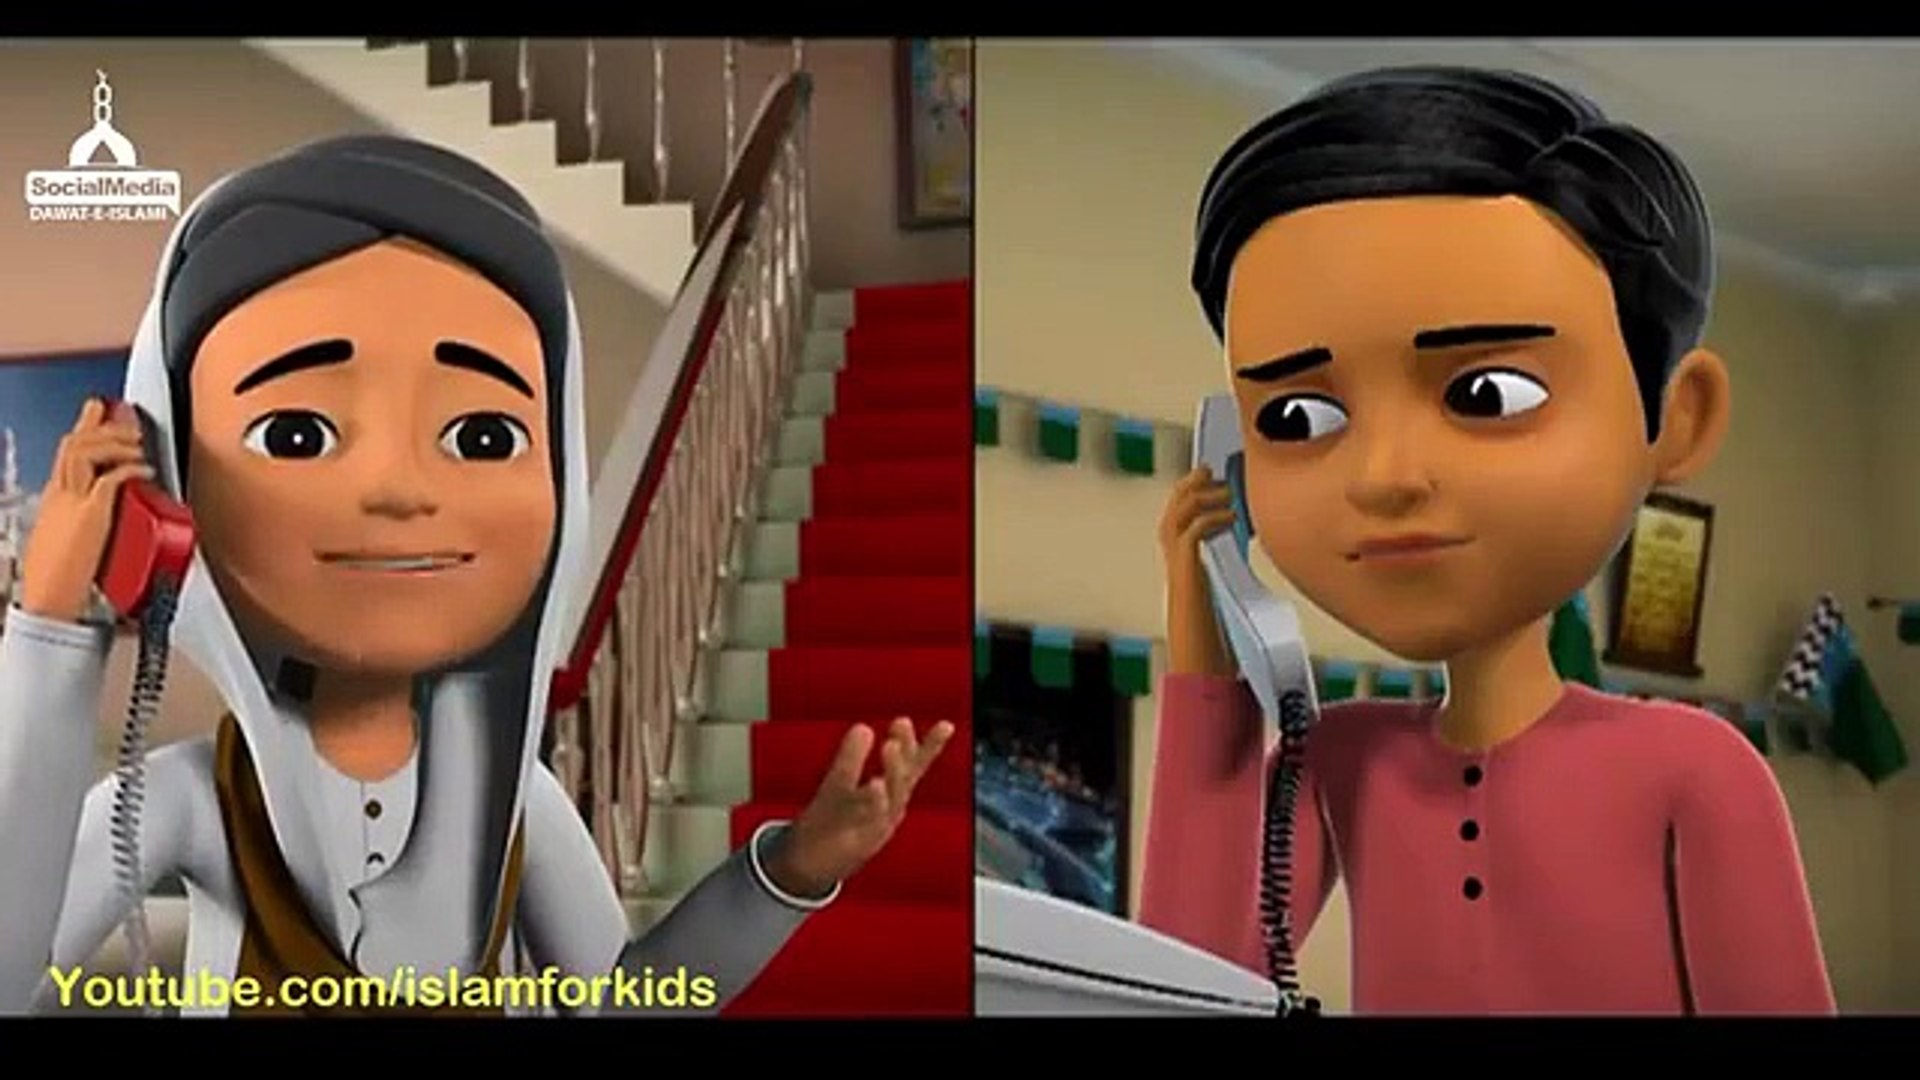 Kids Cartoon - Namaz Piyare Aaqa Ki Aankhon Ki Thandak Hai - Islam for Kids - DawateIslami